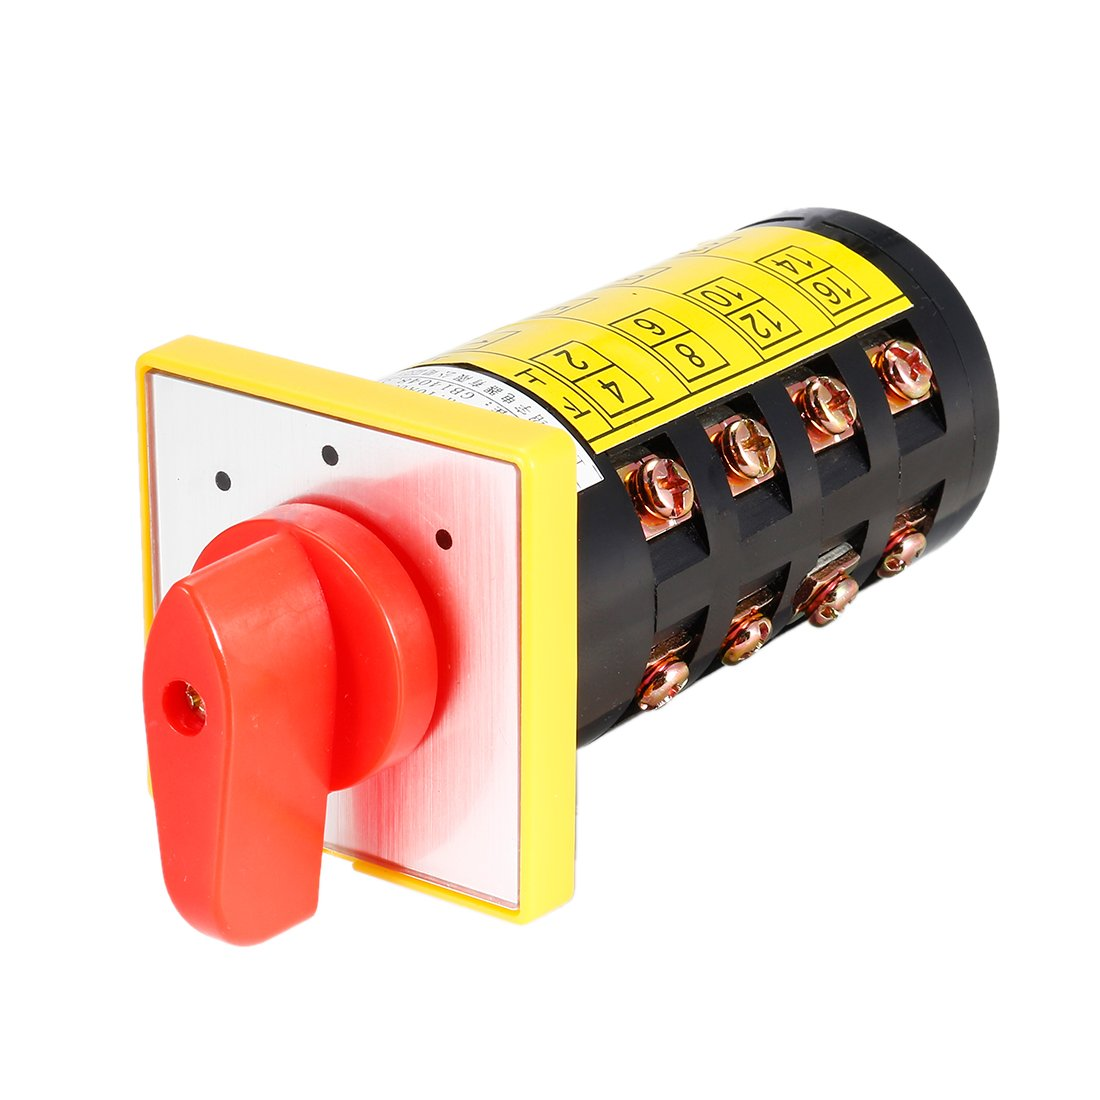 uxcell Changeover Switch 2 Position Rotary Selector Cam Switch Panel Mount 8 Terminals Latching Ui 550V Ith 40A